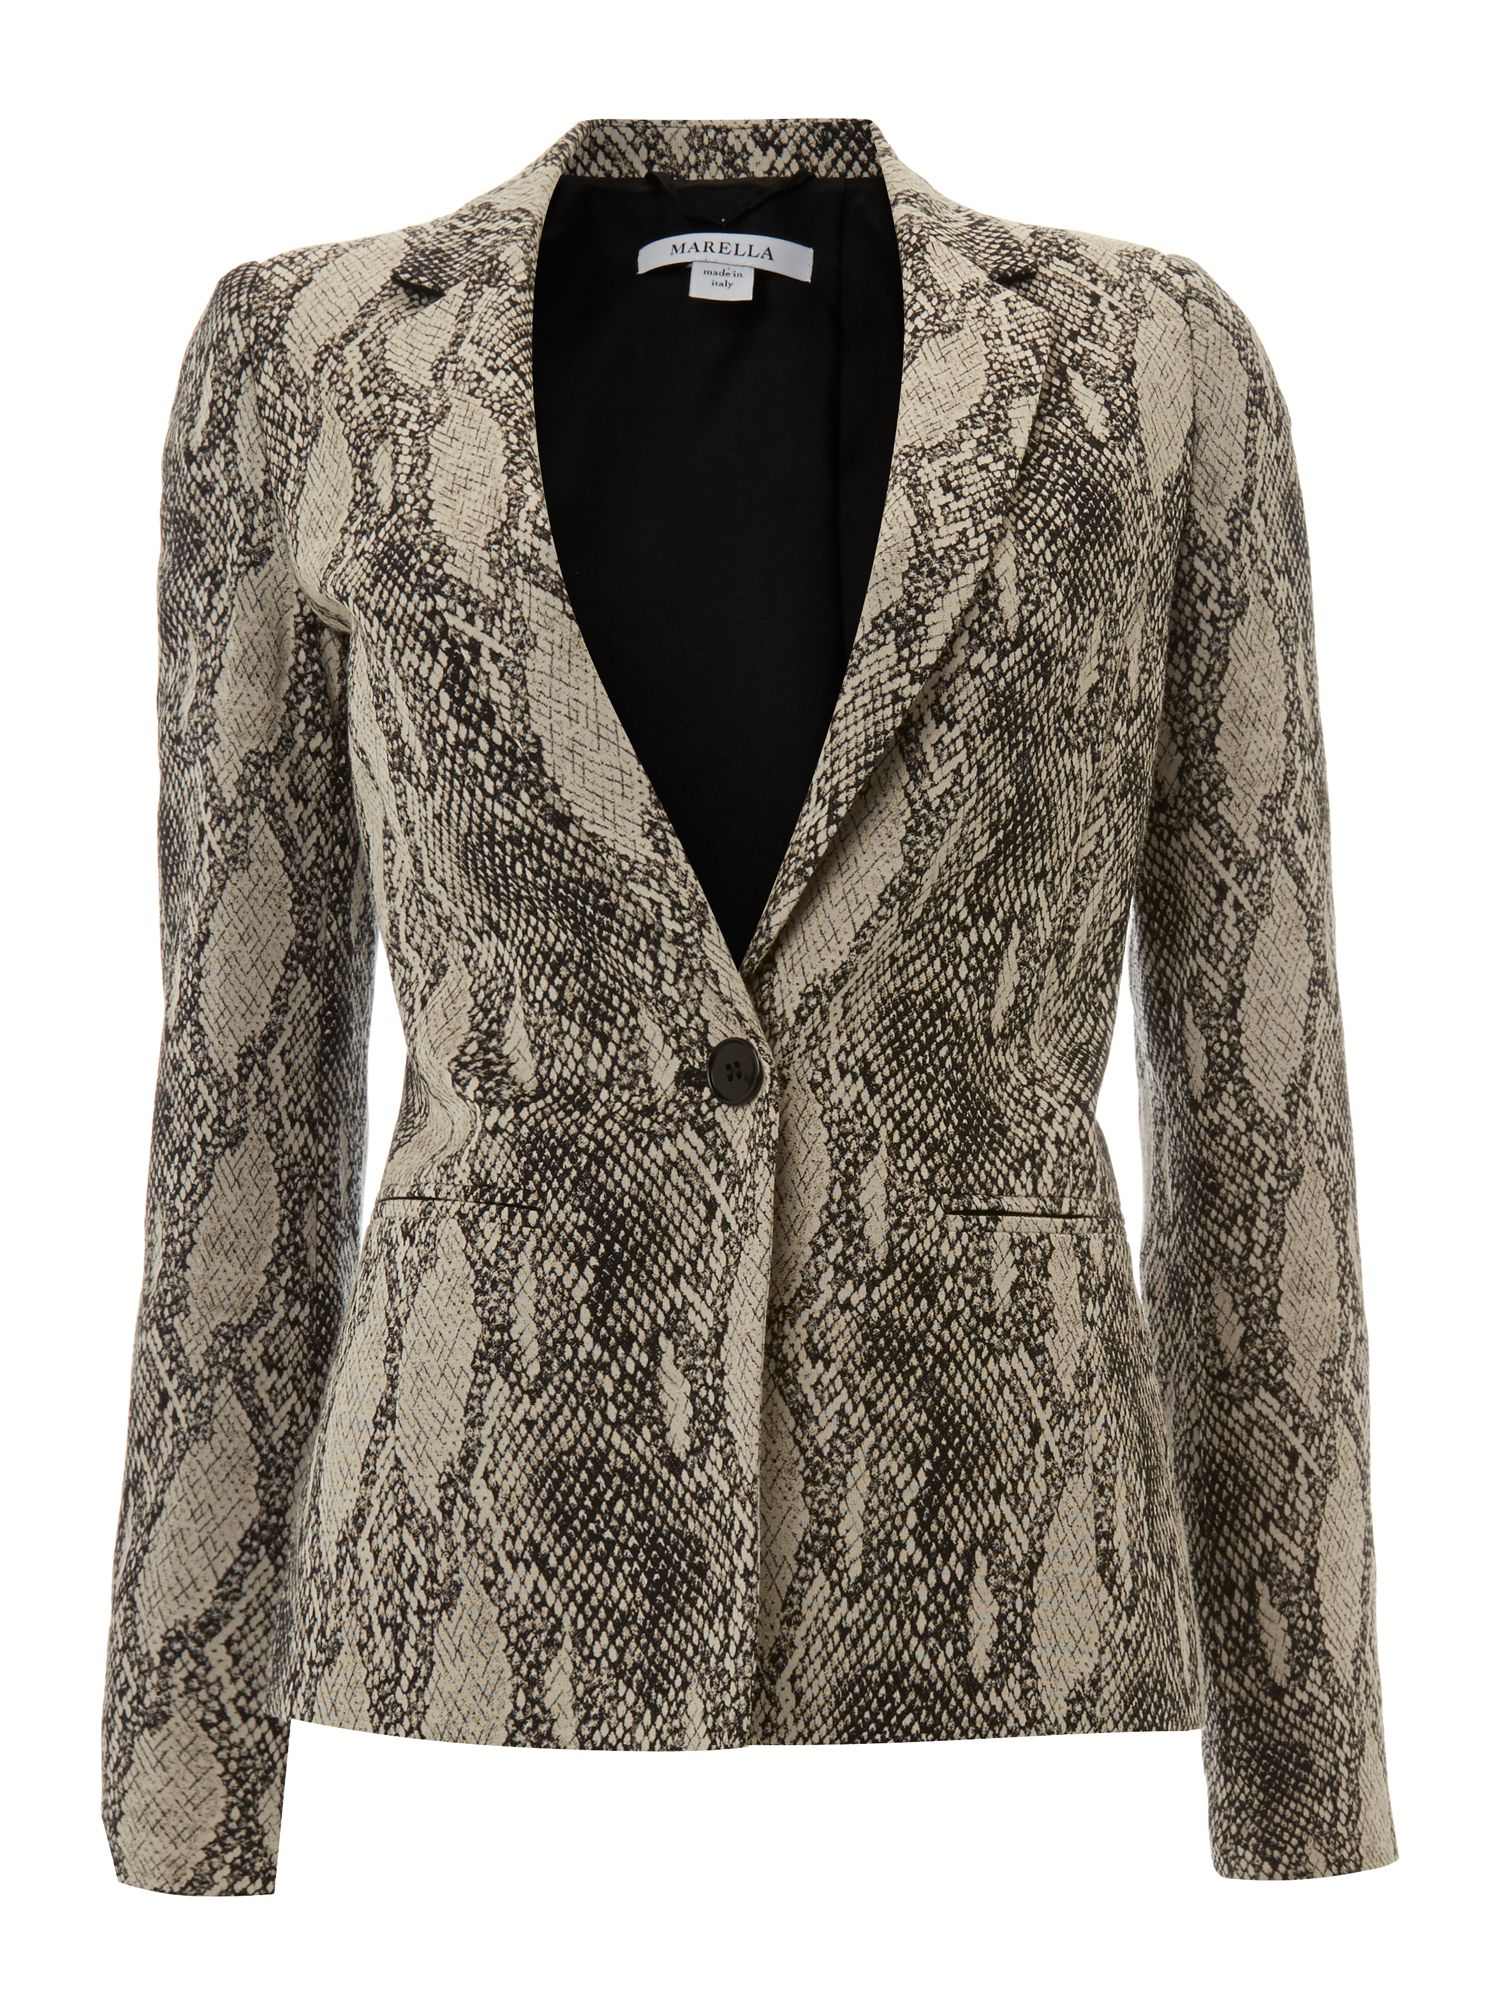 Zante long sleeve snake print jacket